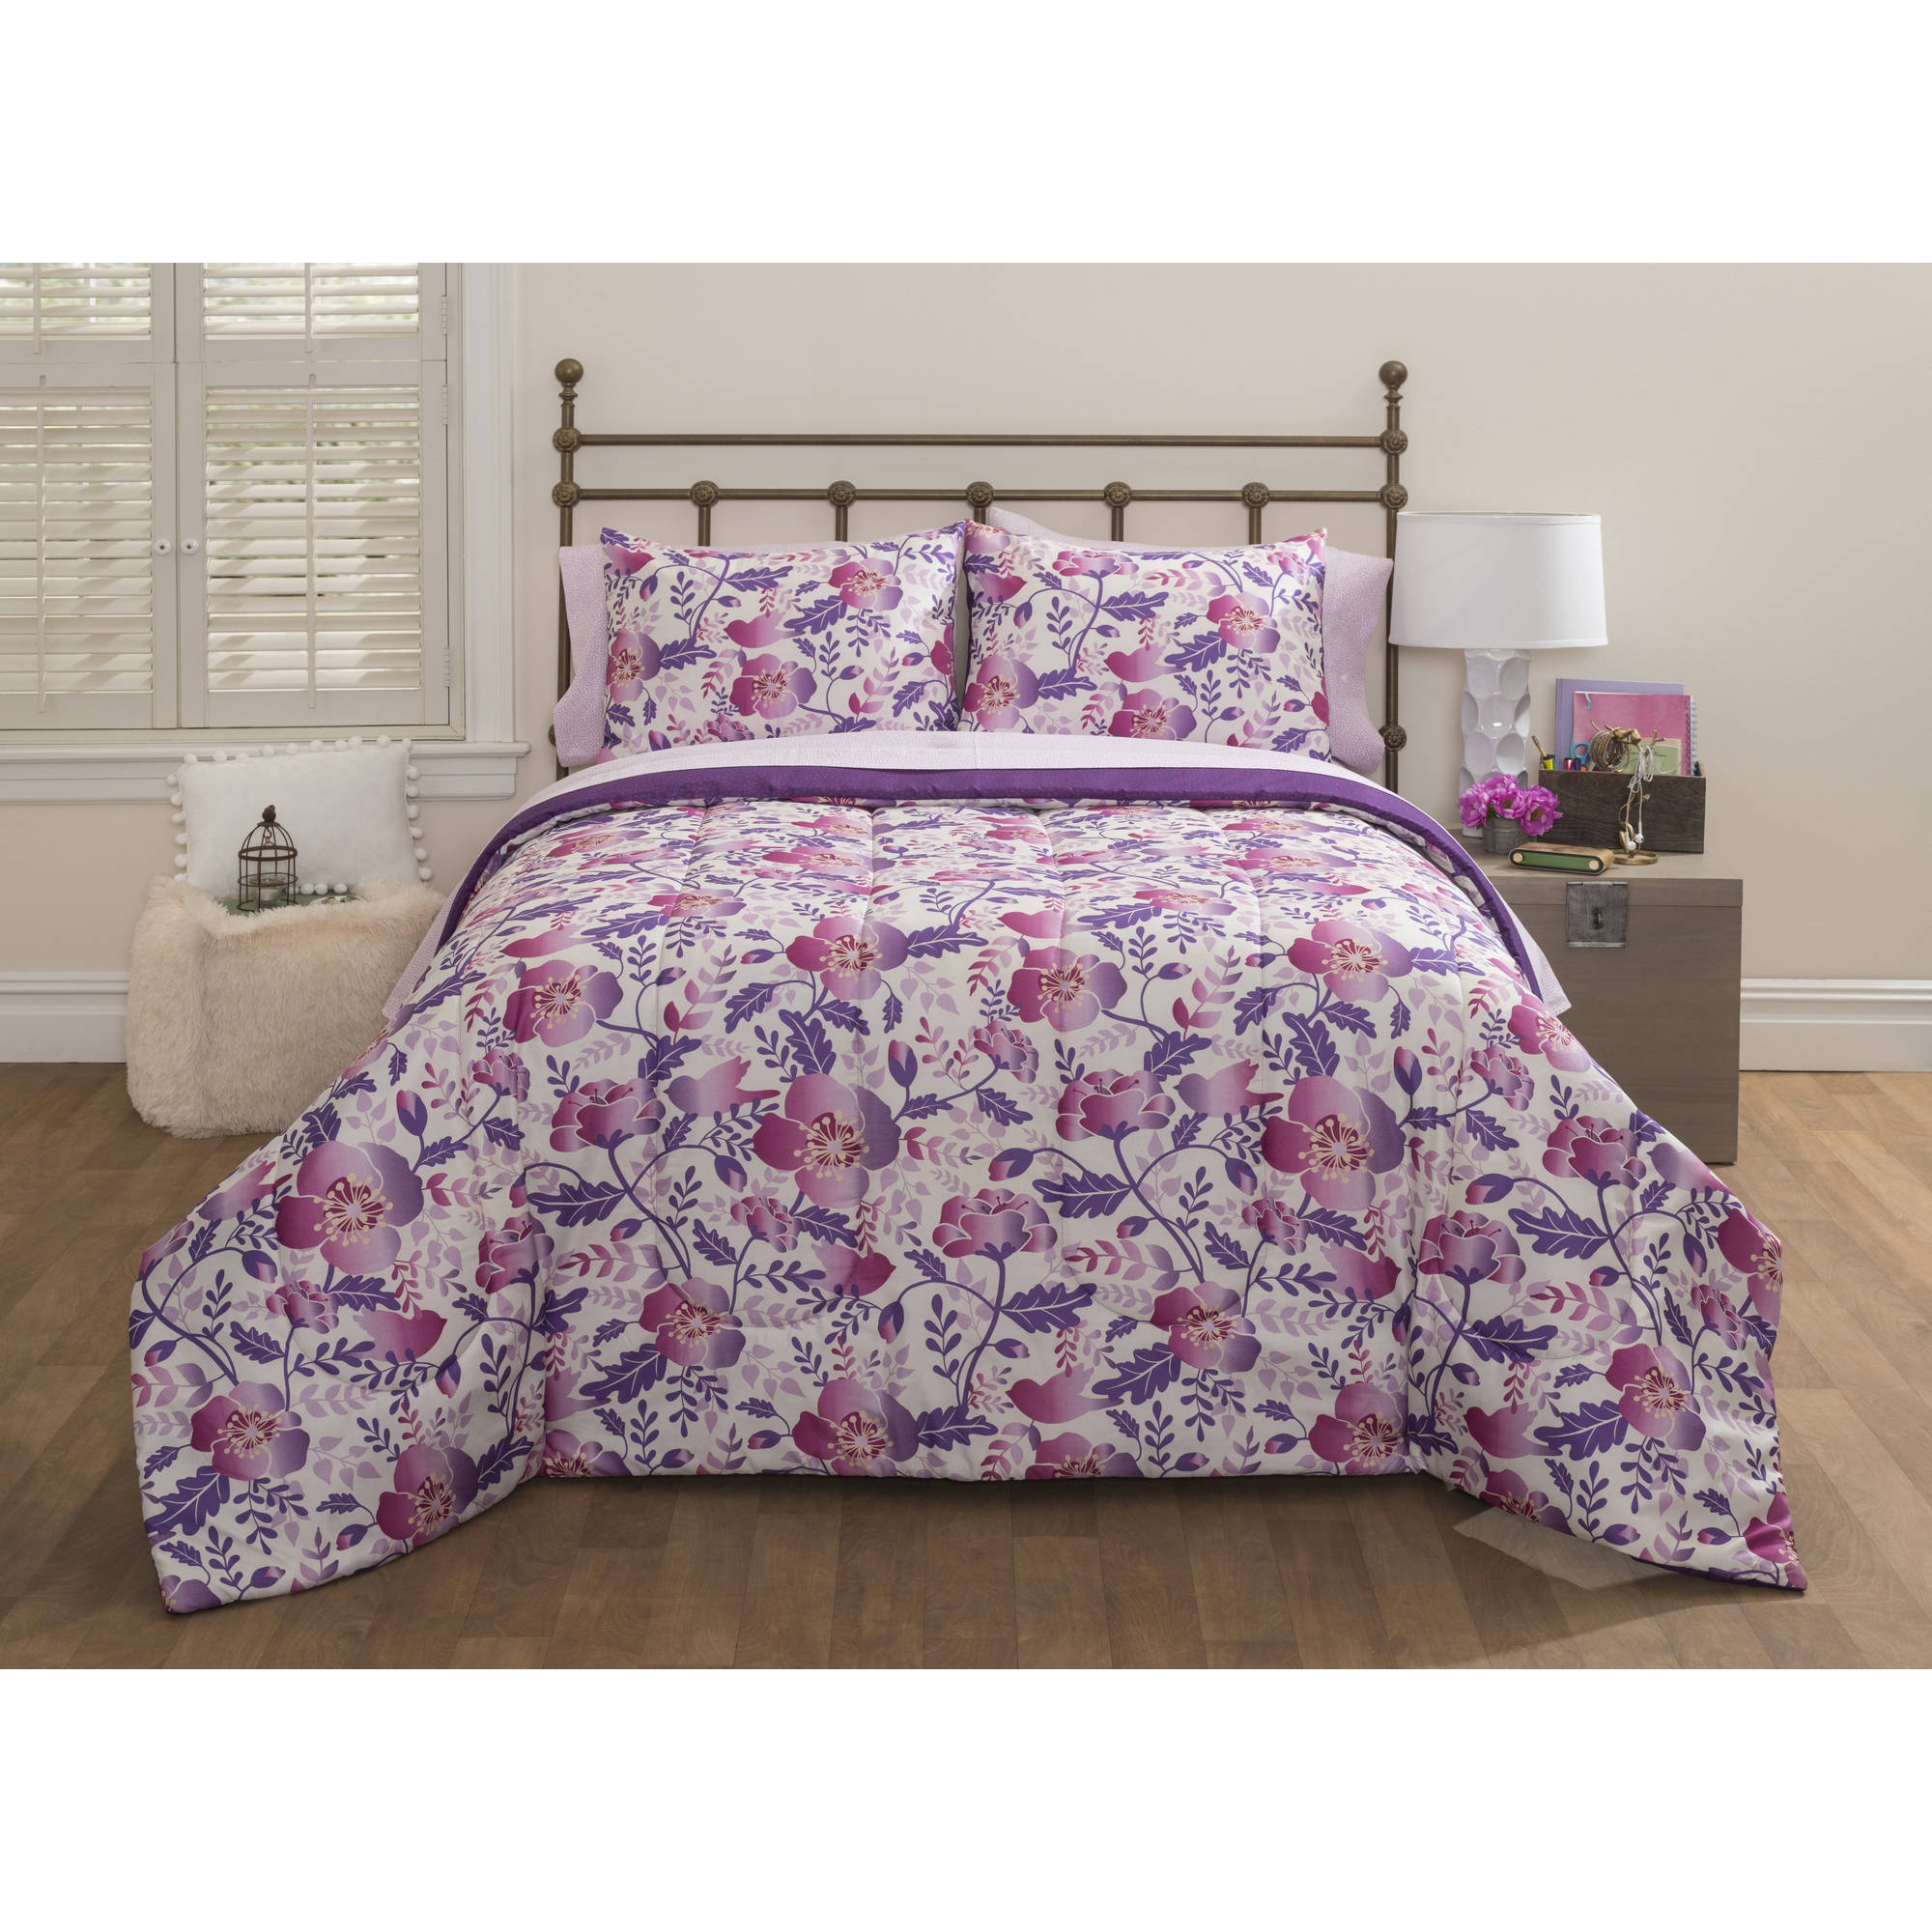 Latitude Nature Boutique Bed-in-a-Bag Bedding Set